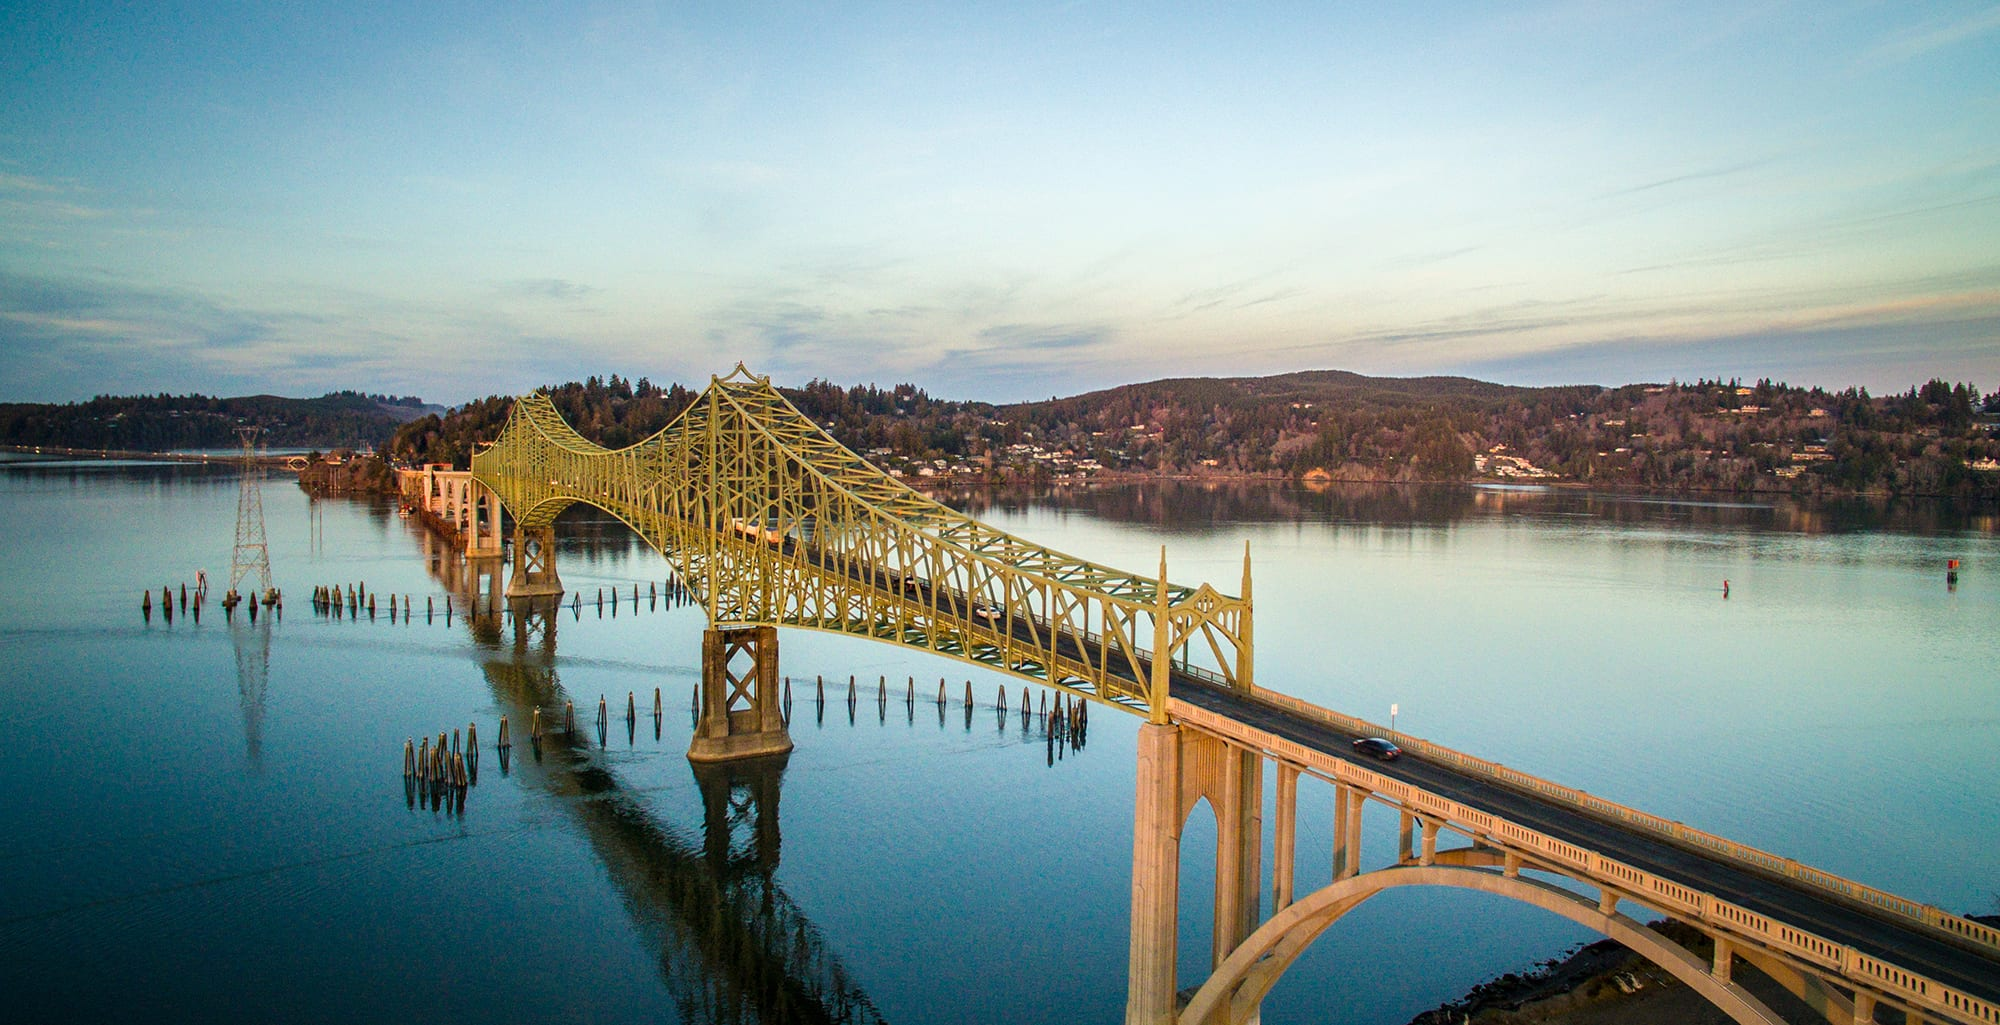 North Bend Bridge spanning across Coos Bay